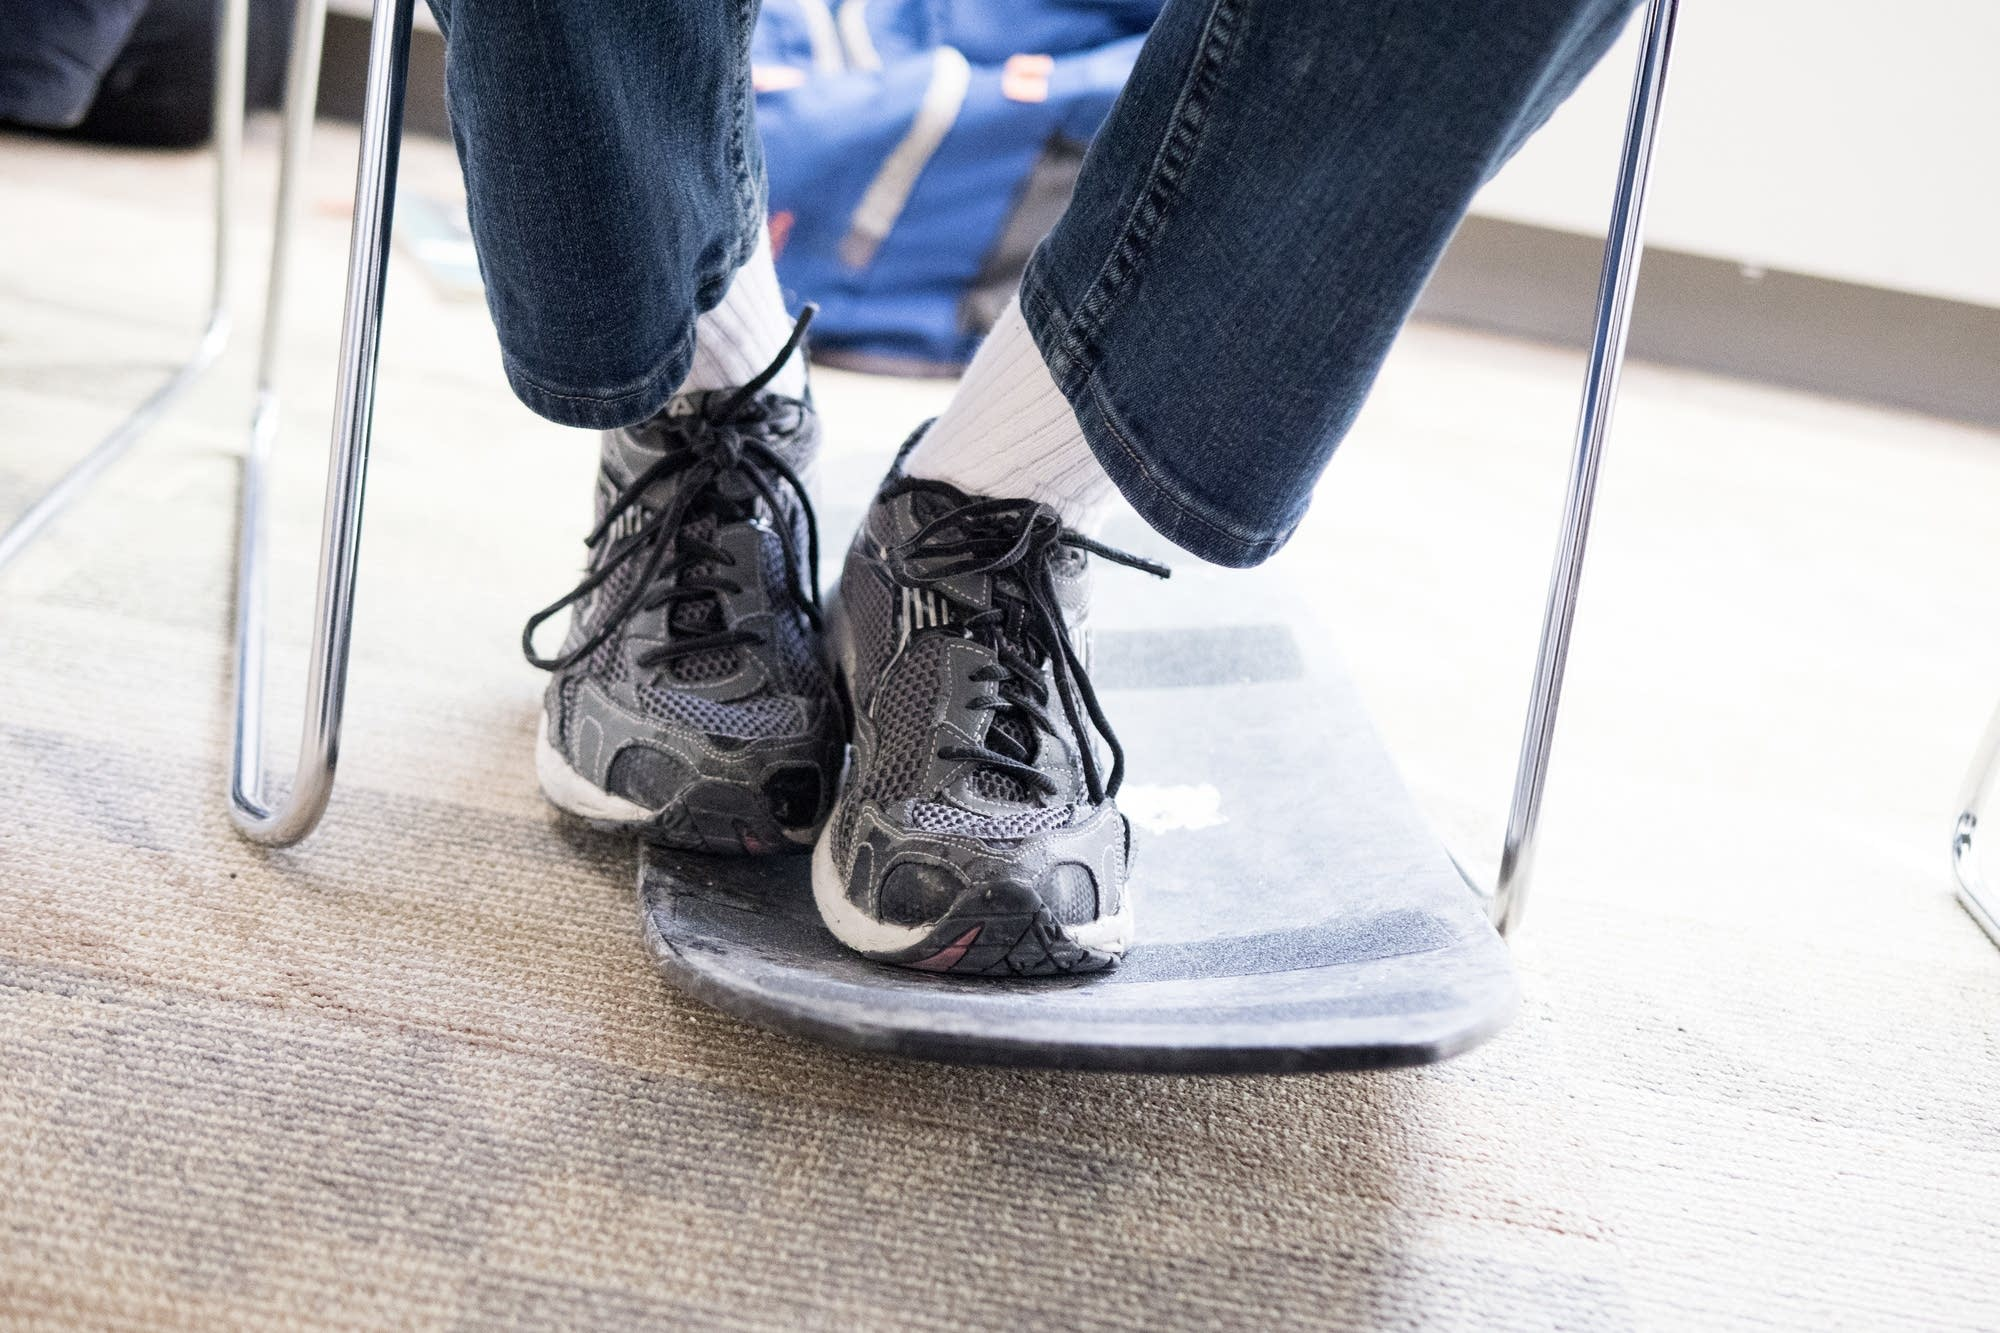 A student rests his feet on a balance board during class at Lionsgate.